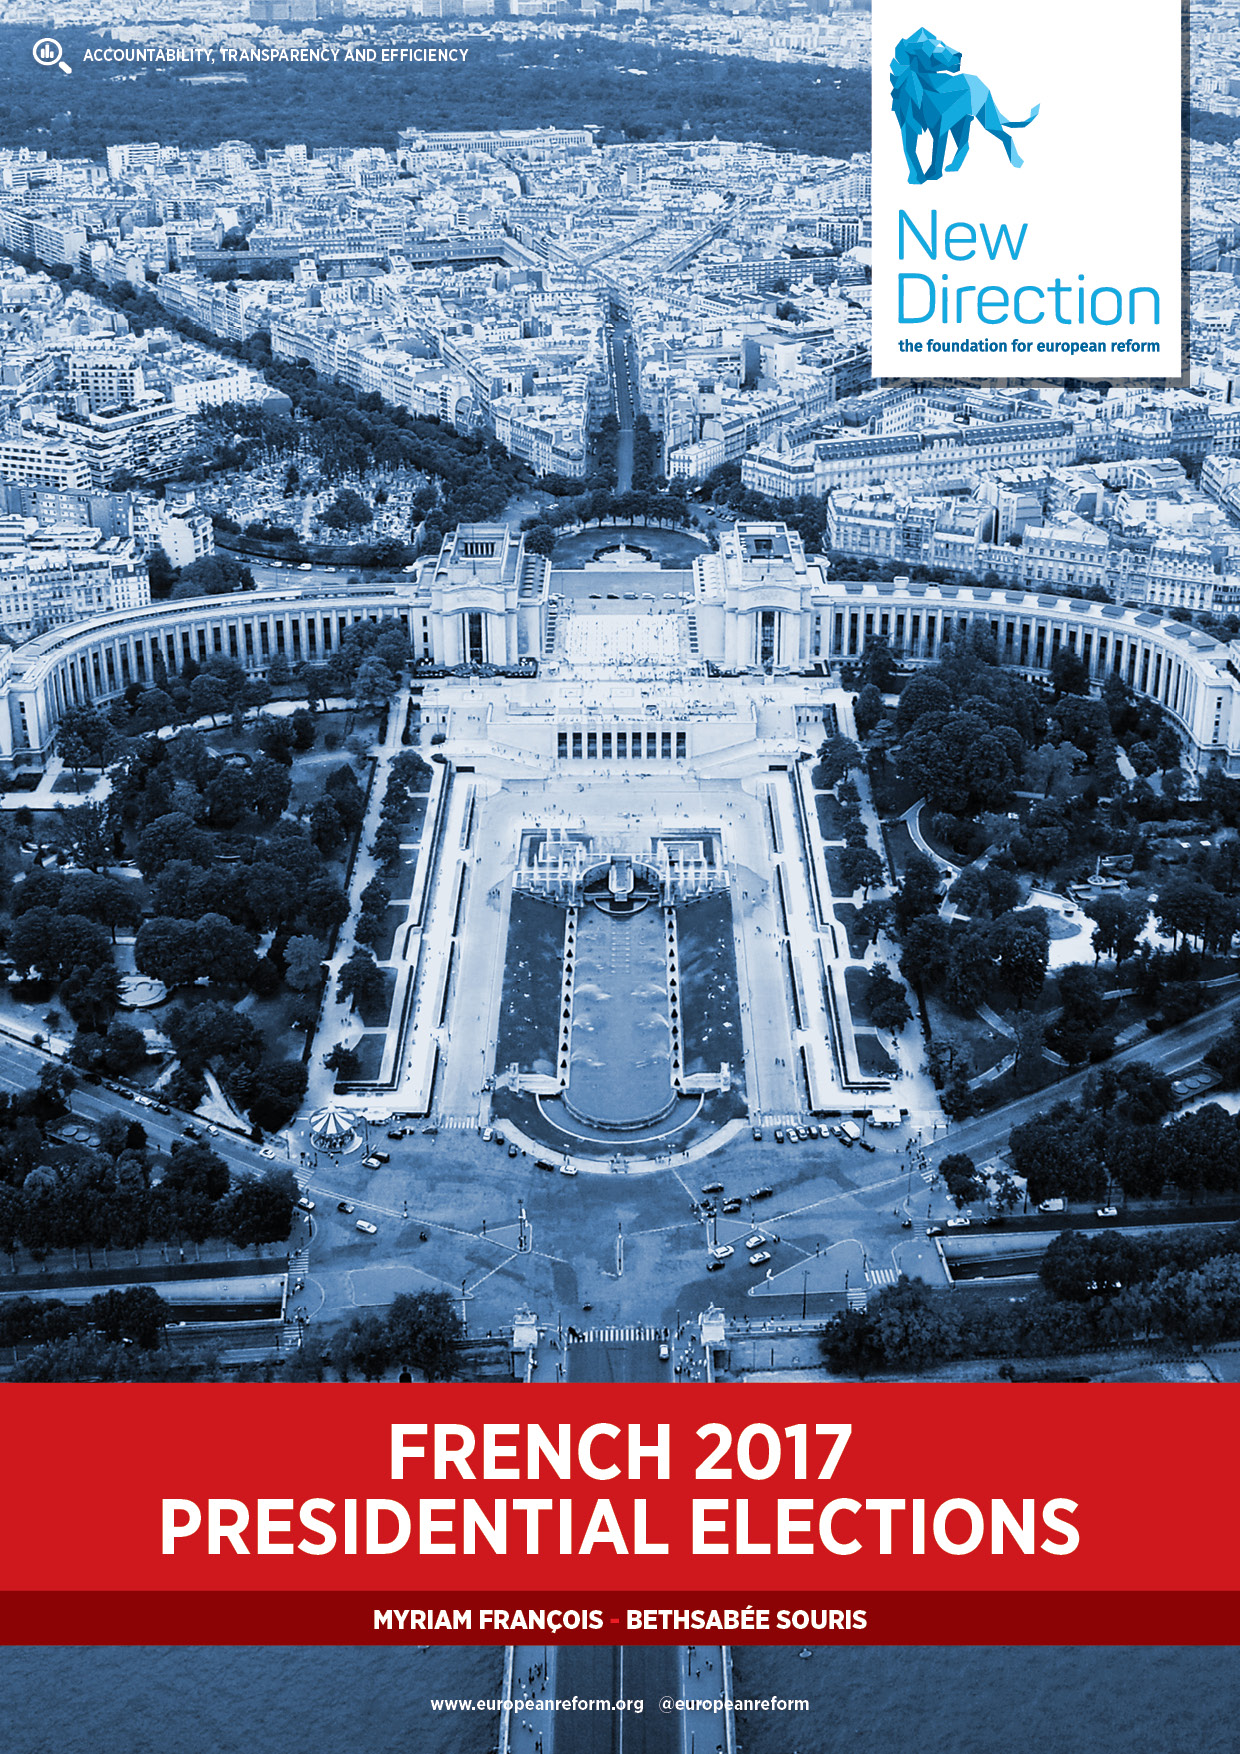 French 2017 presidential elections